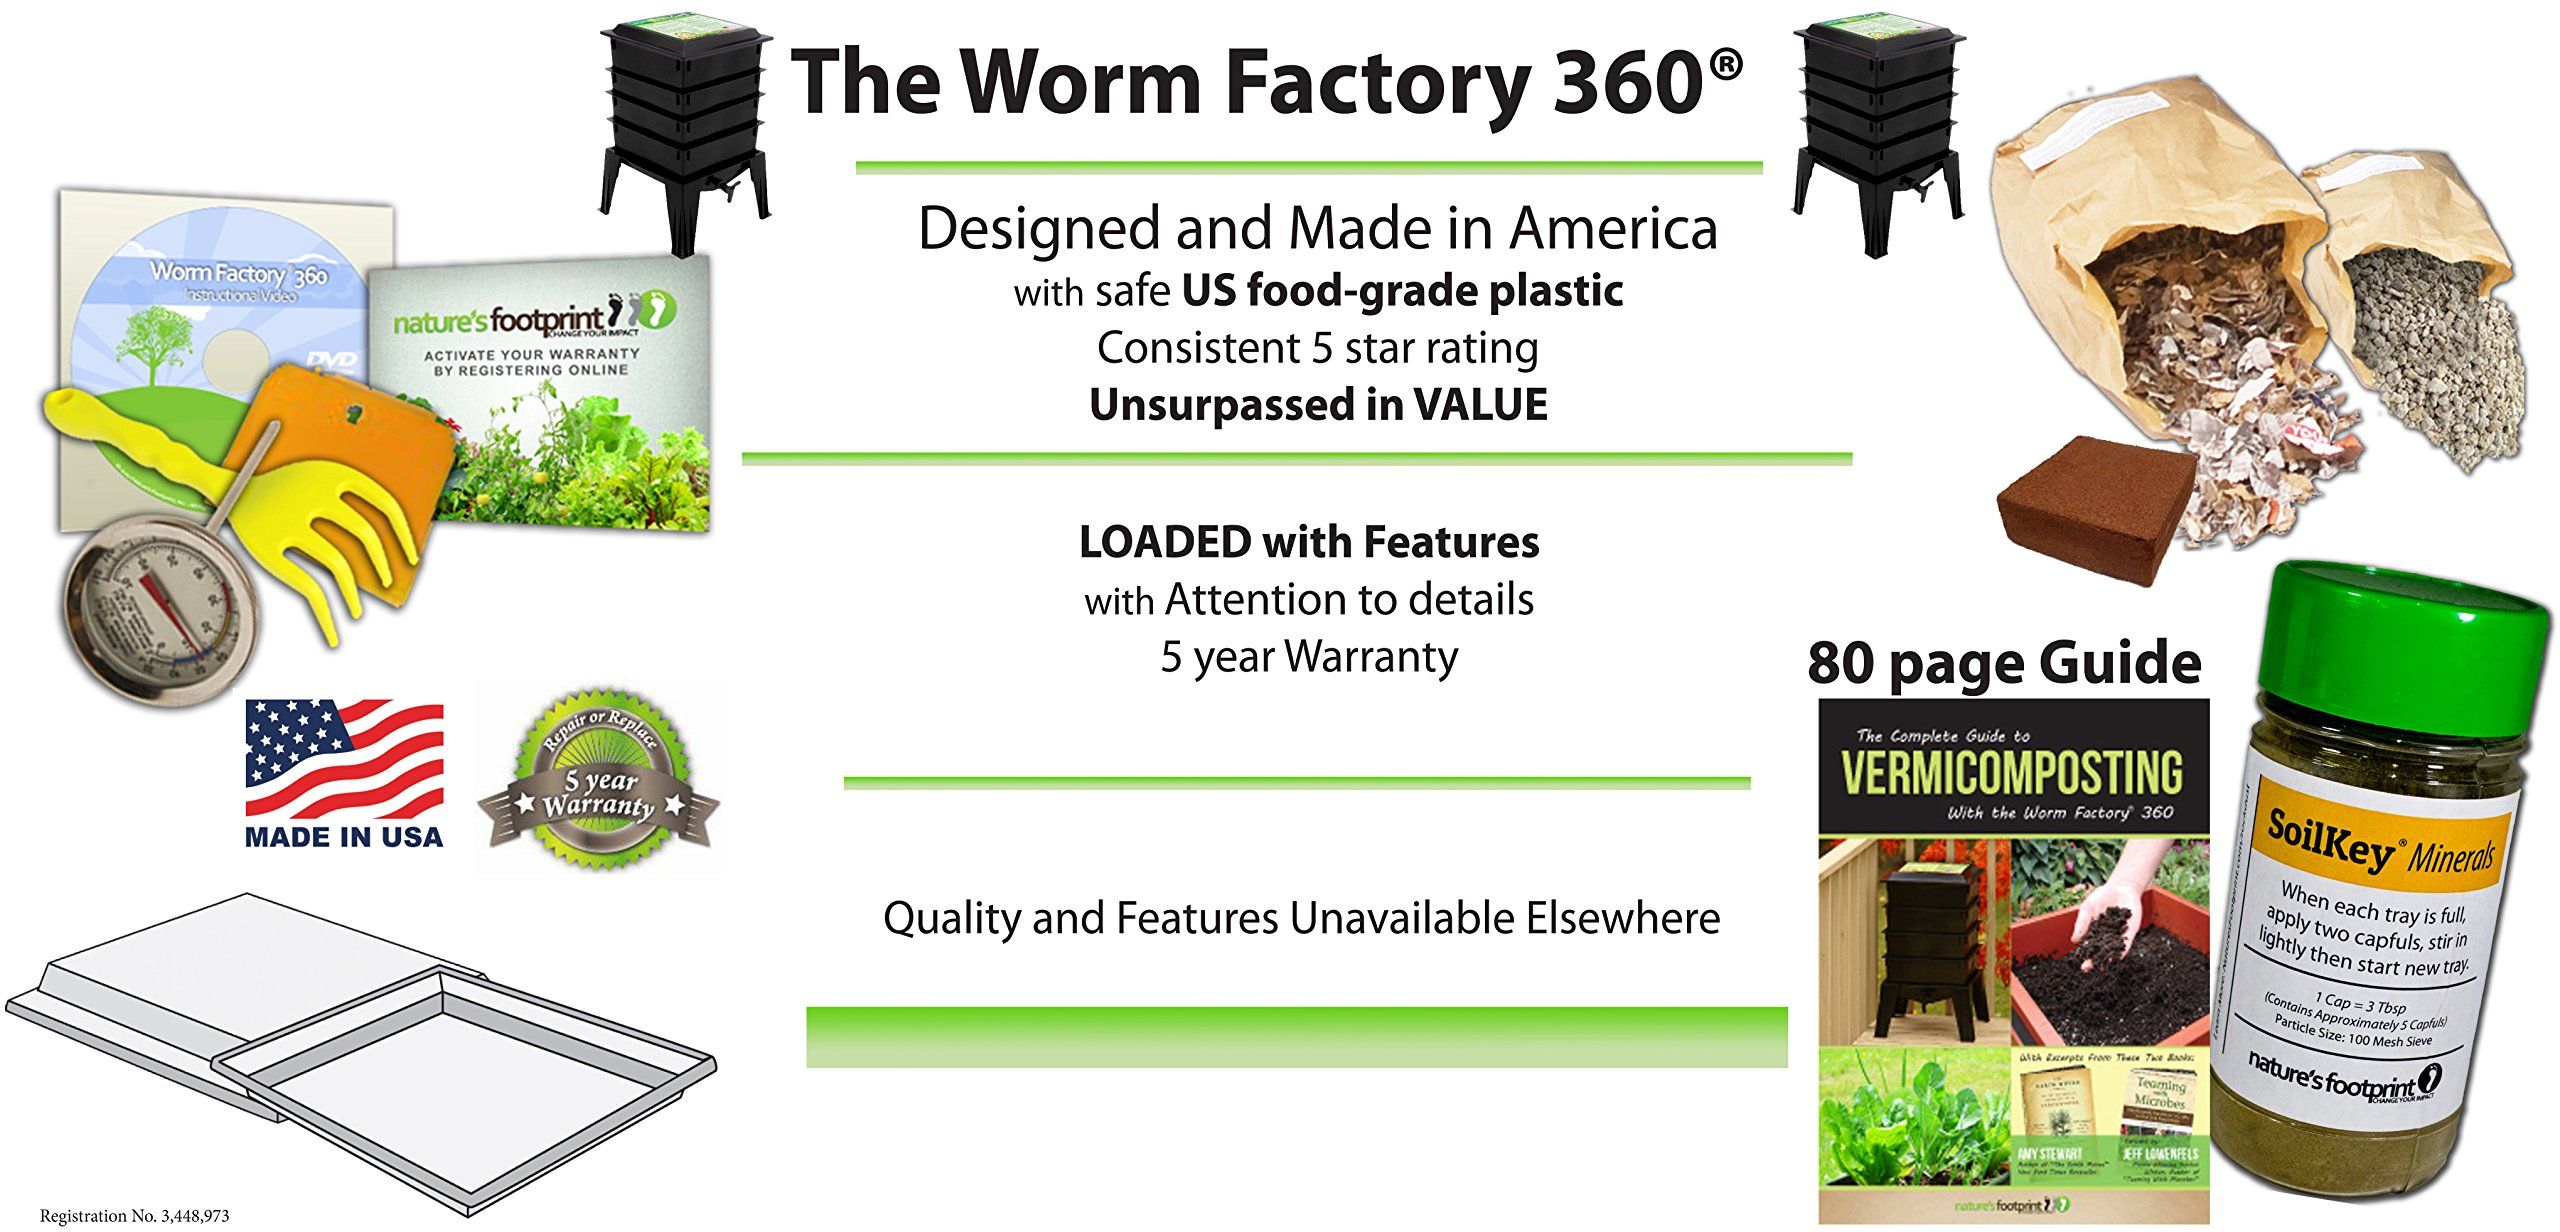 Worm Factory 360 WF360B Worm Composter, Black by Nature's Footprint